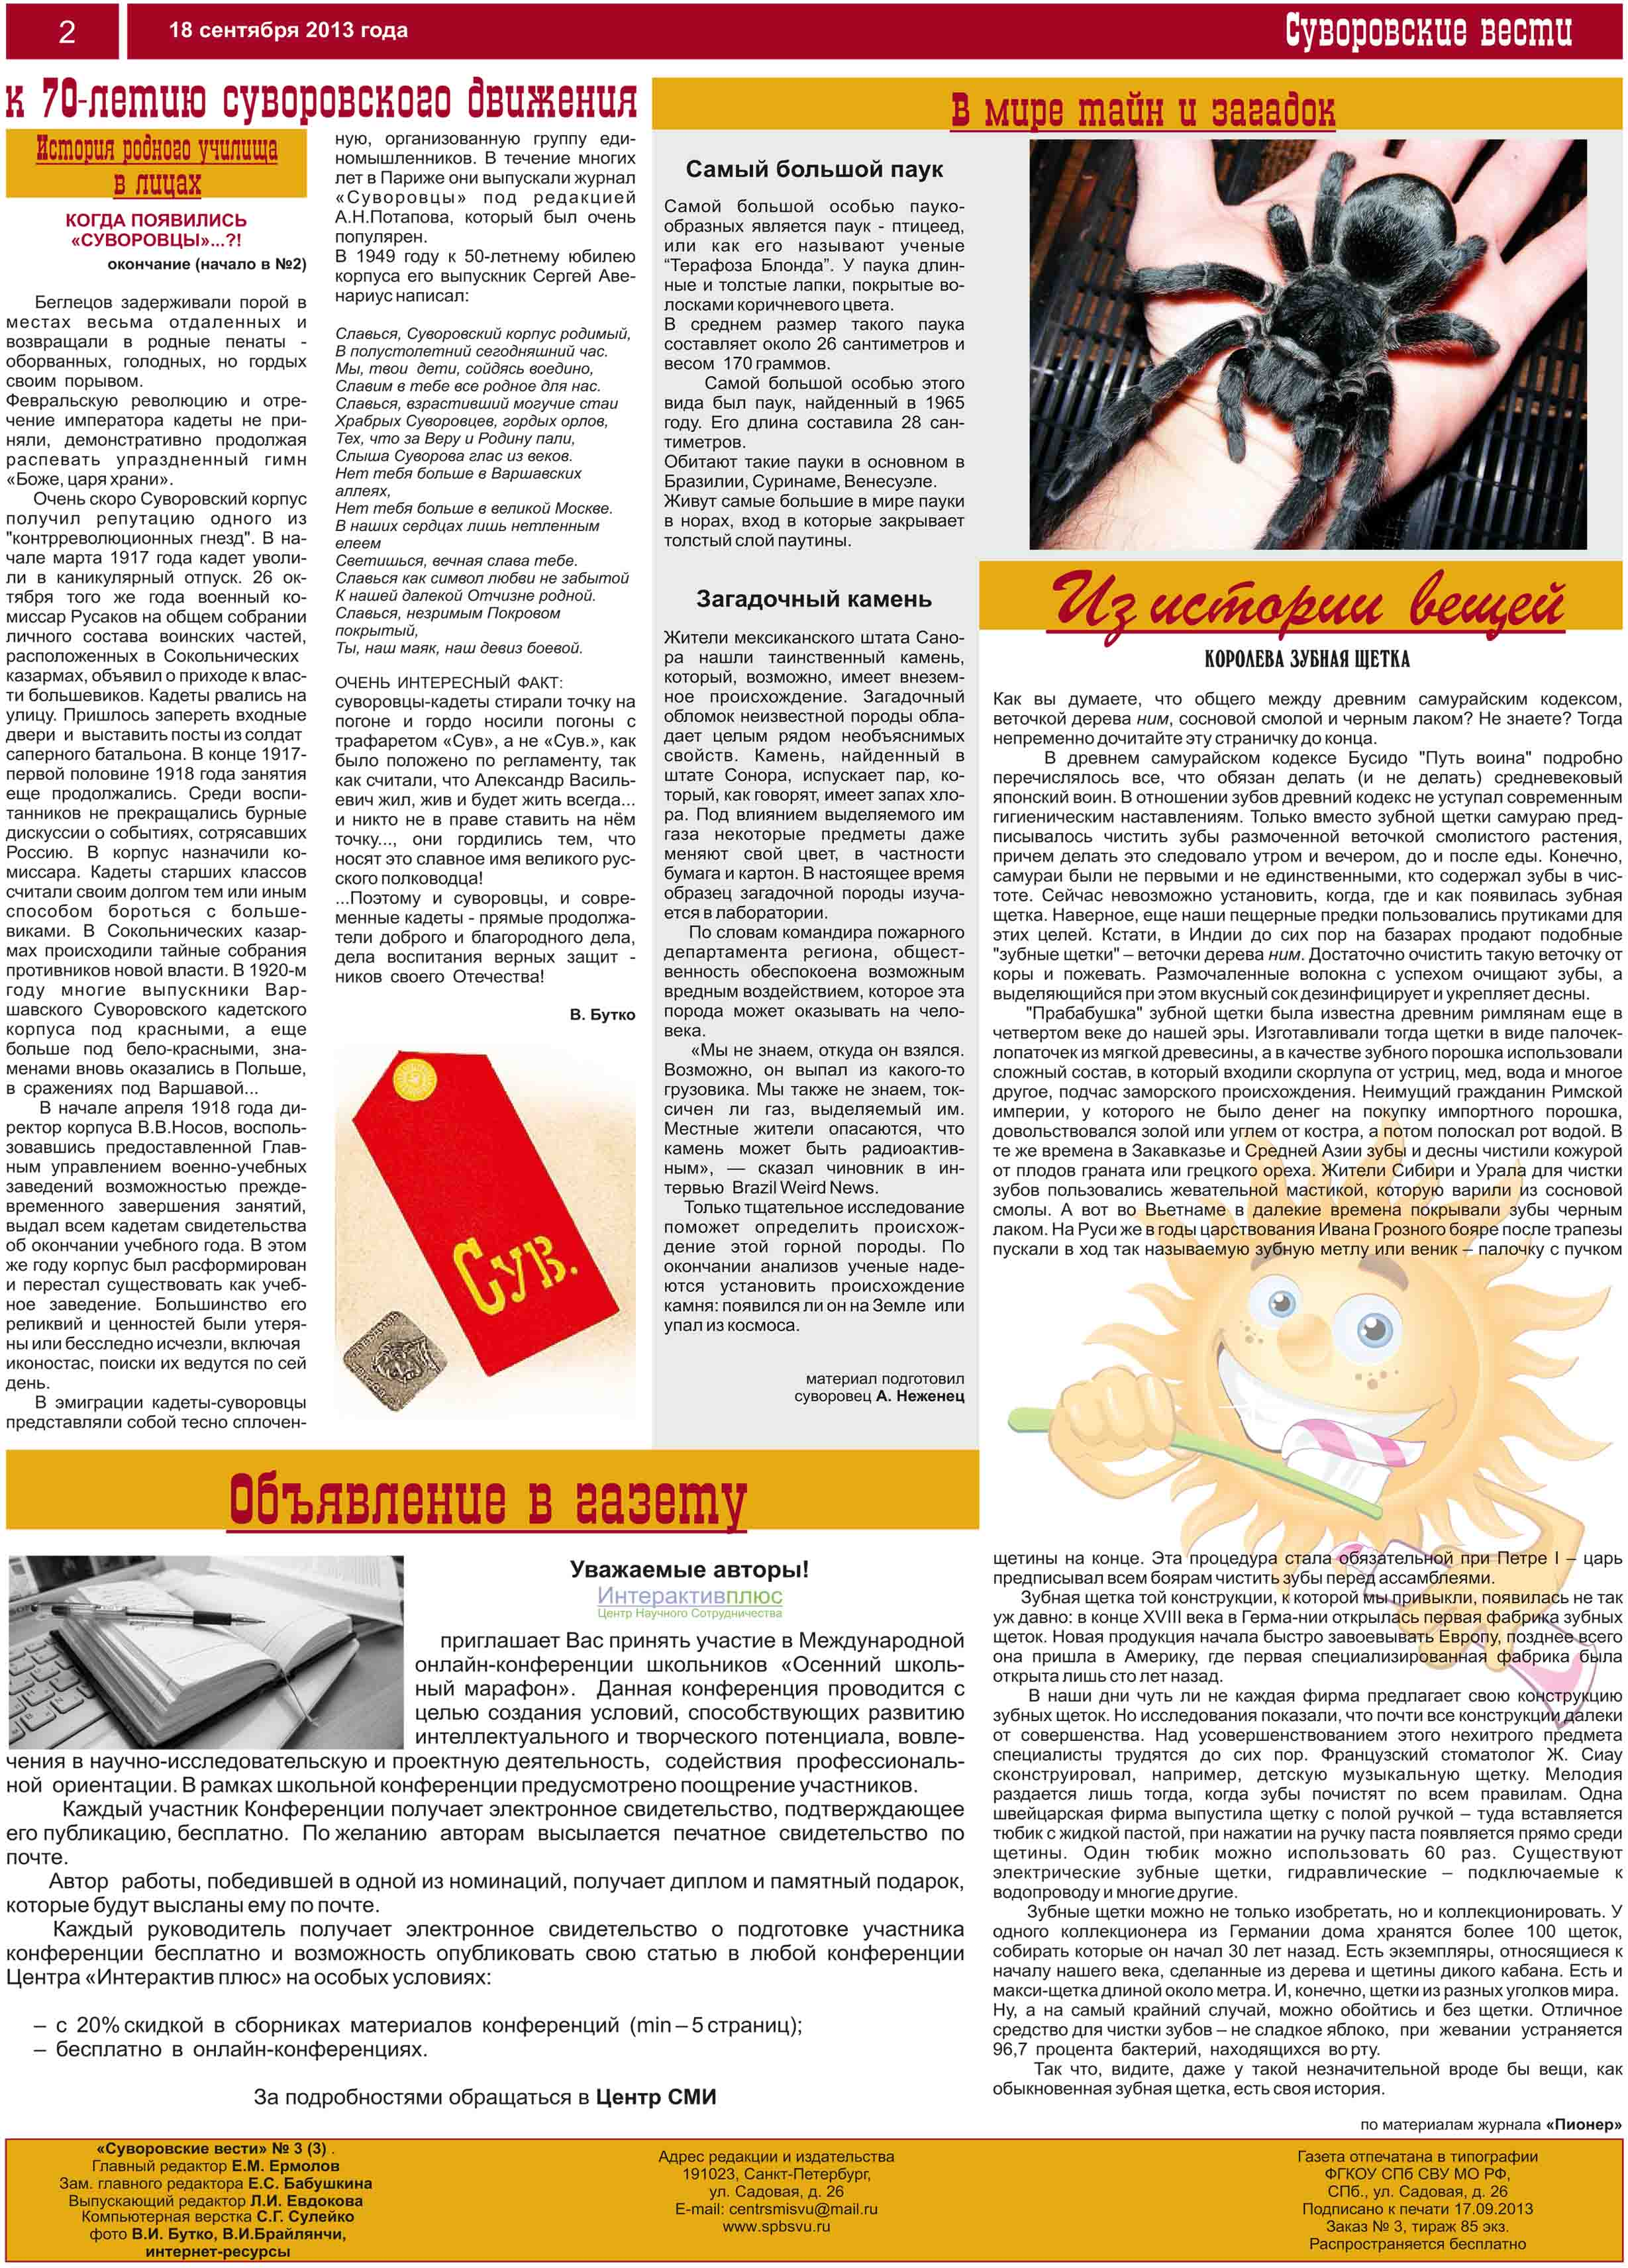 newsPaper_03.cdr